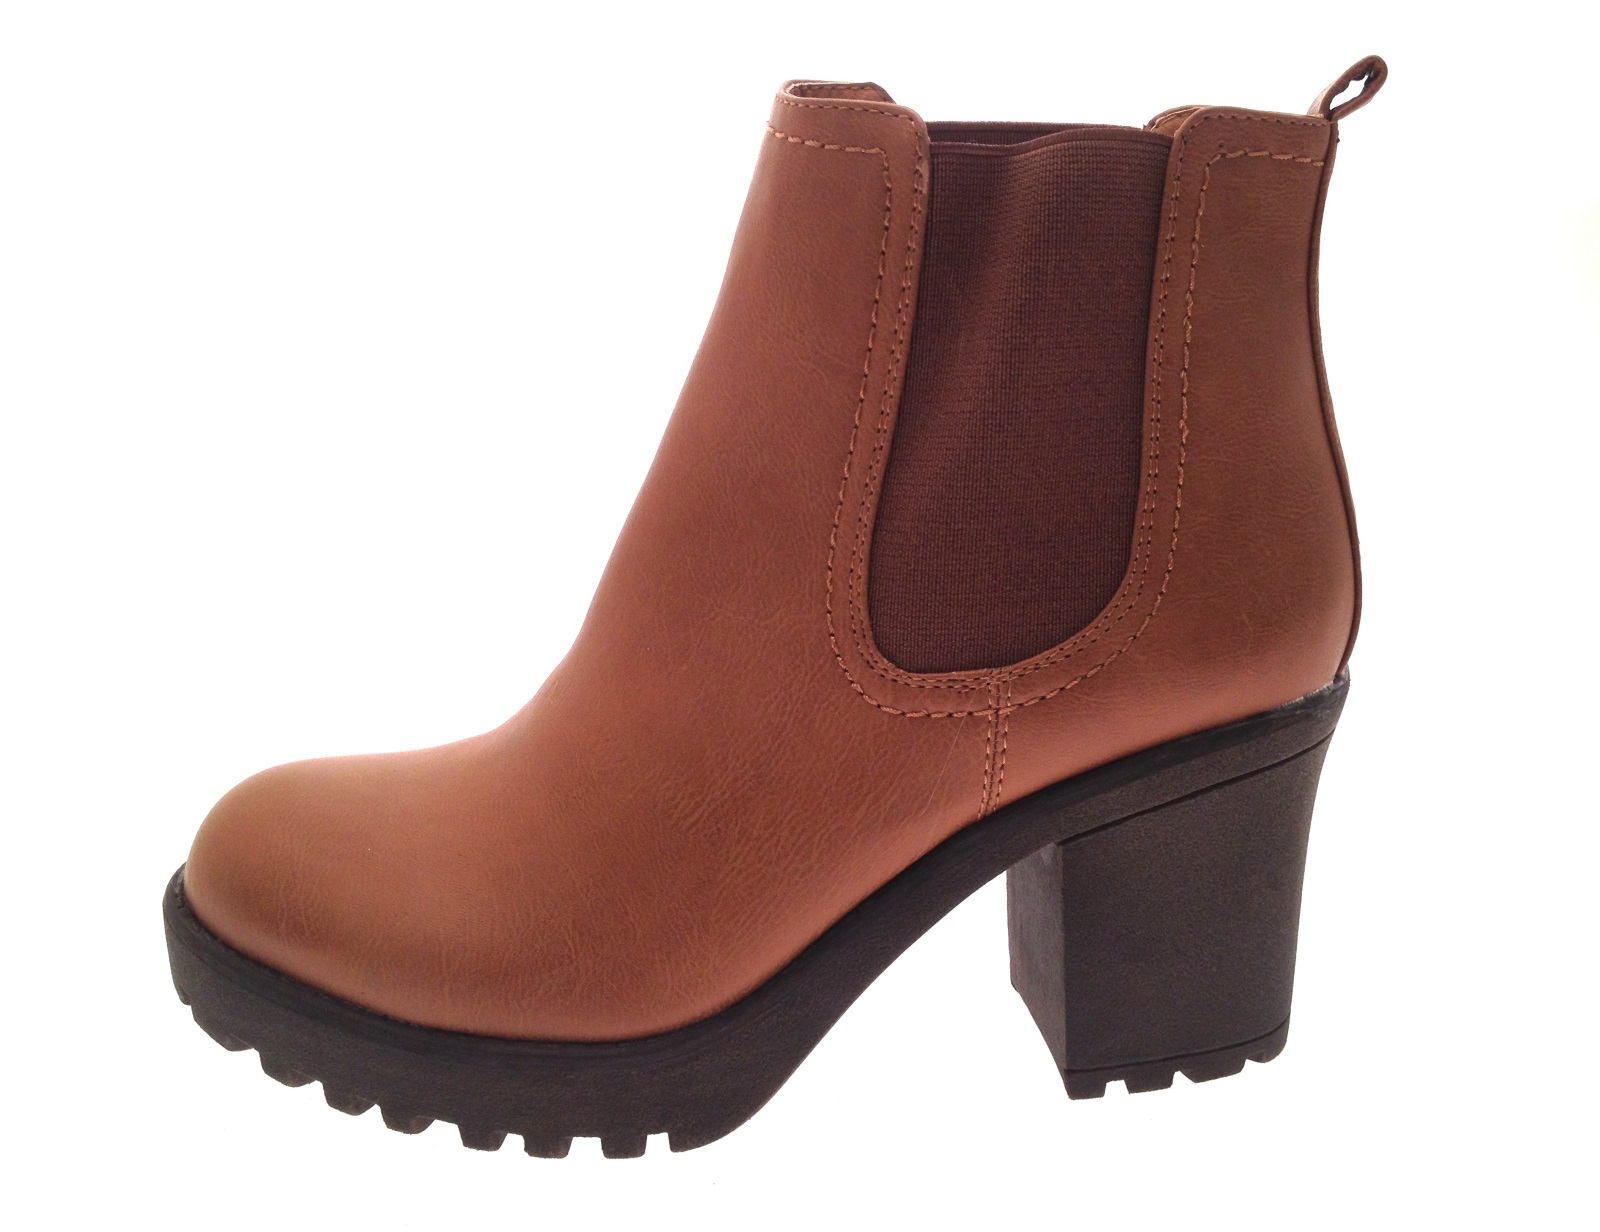 Womens Mid Chunky Block Heel Chelsea Low Ankle Boots Platform Ladies ... cc8641723025